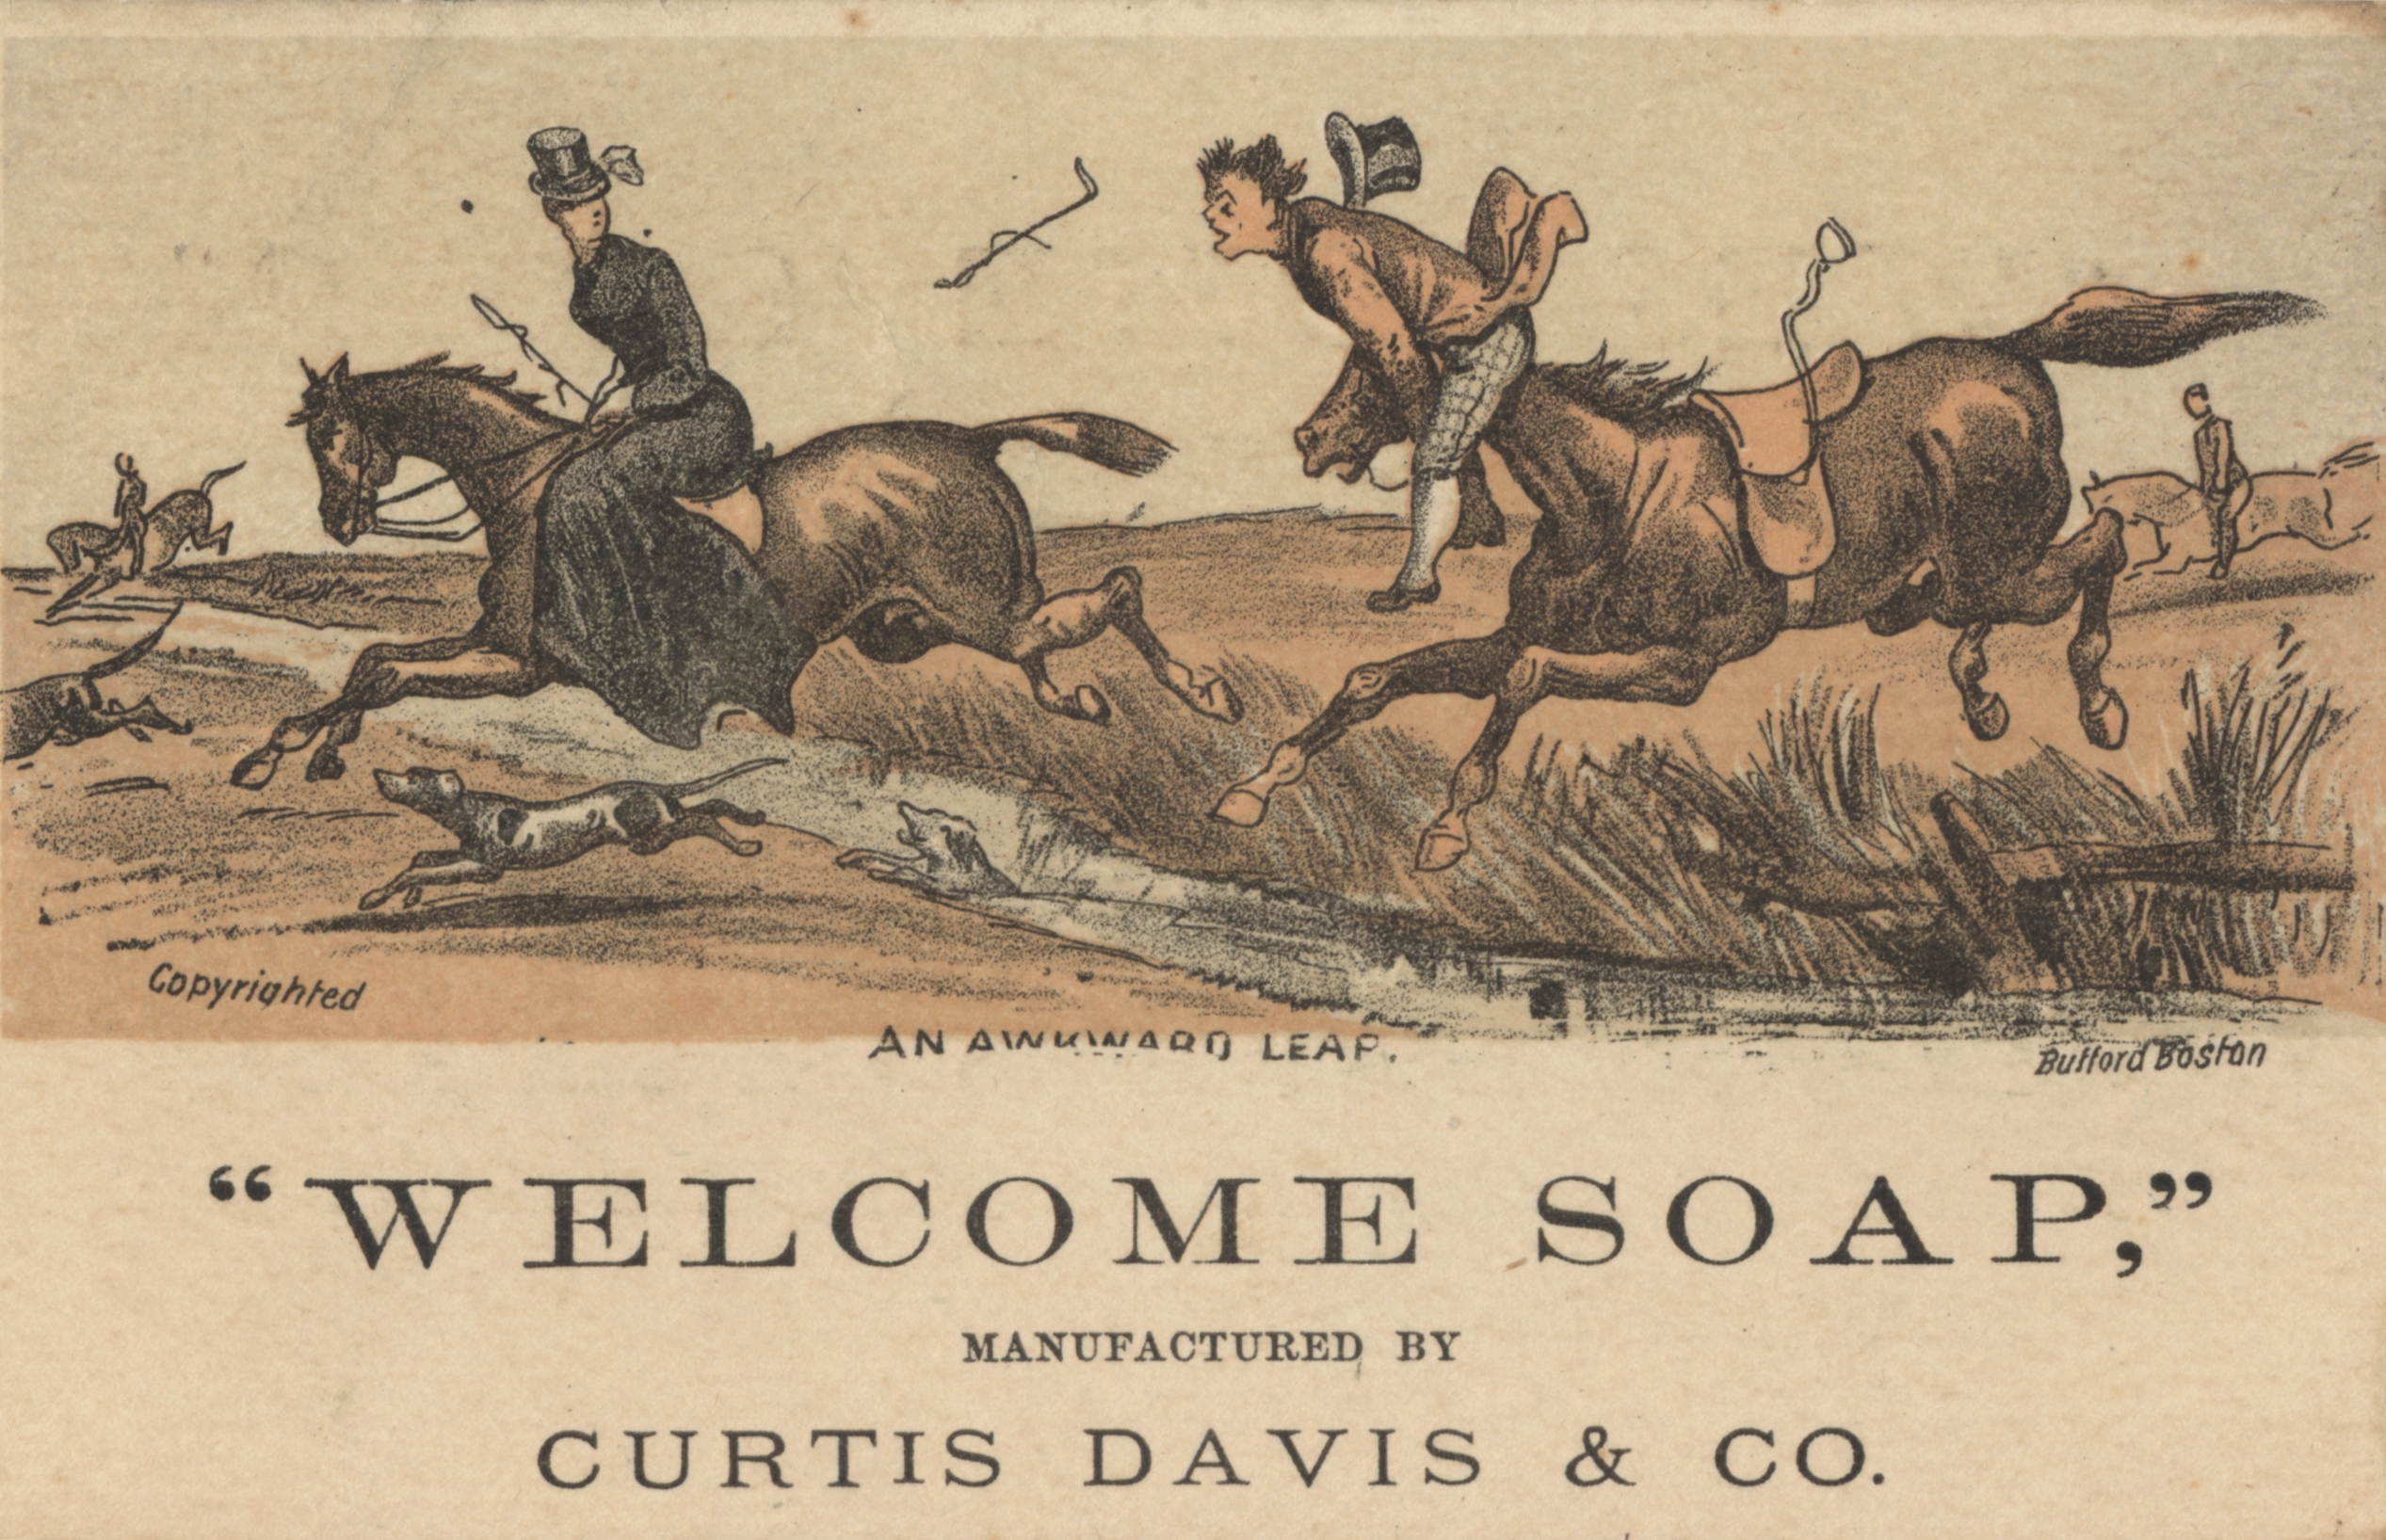 Advertisement for soap. Illustration shows figures on horseback leaping over a small stream.